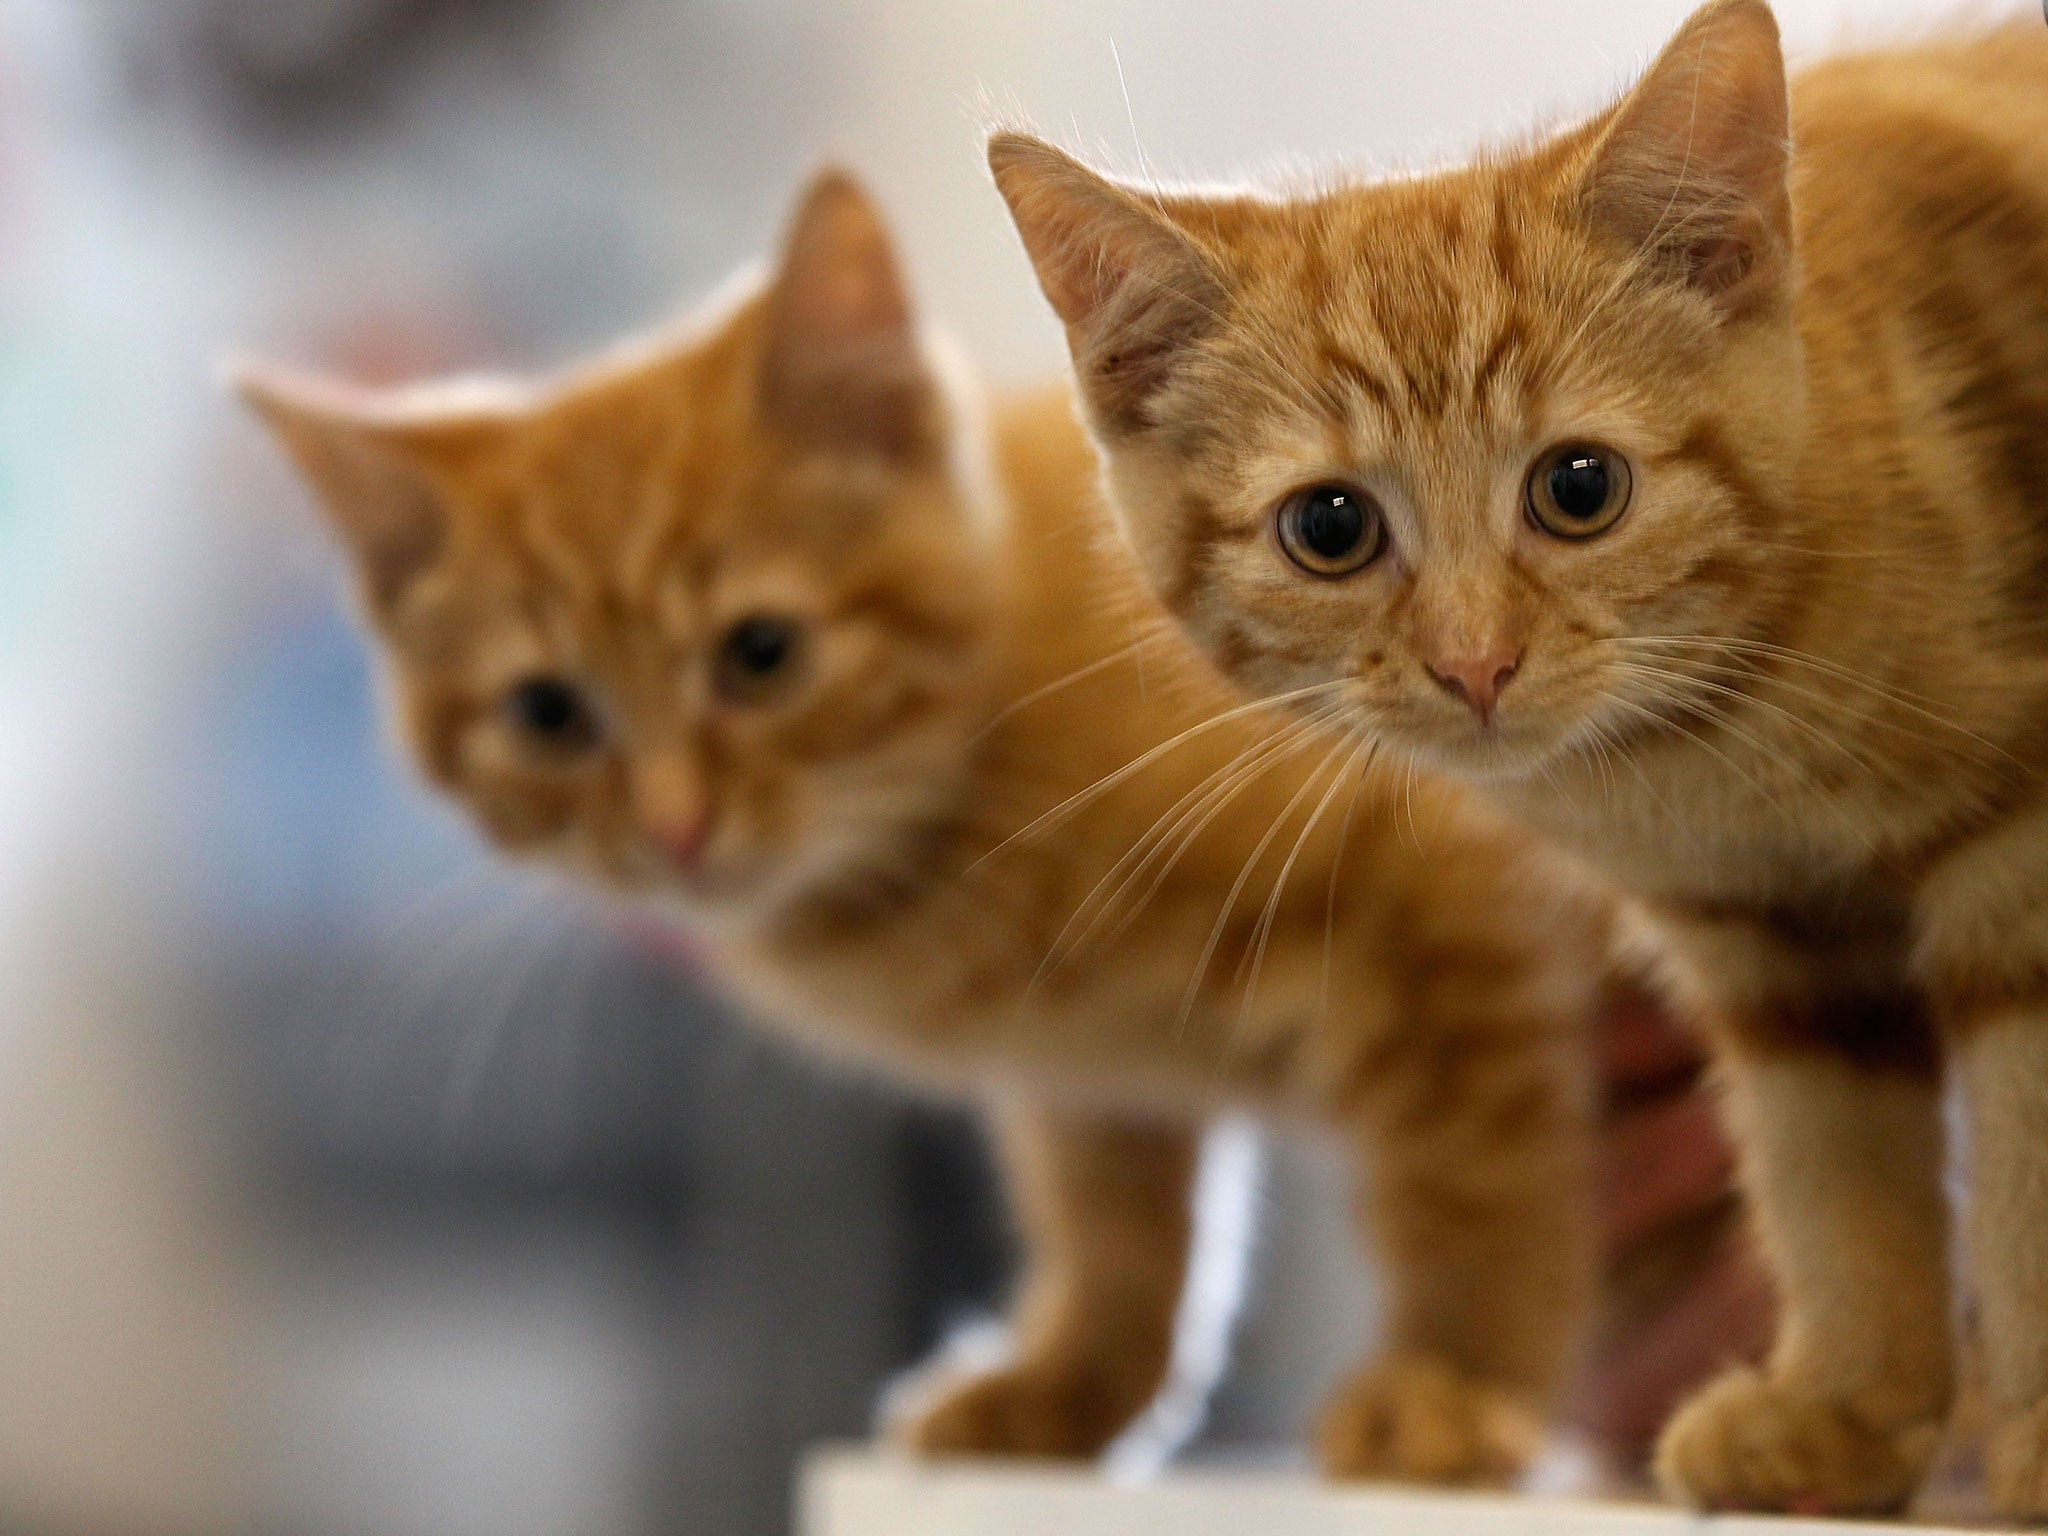 cat scratch disease cuddling a kitten could kill you study finds